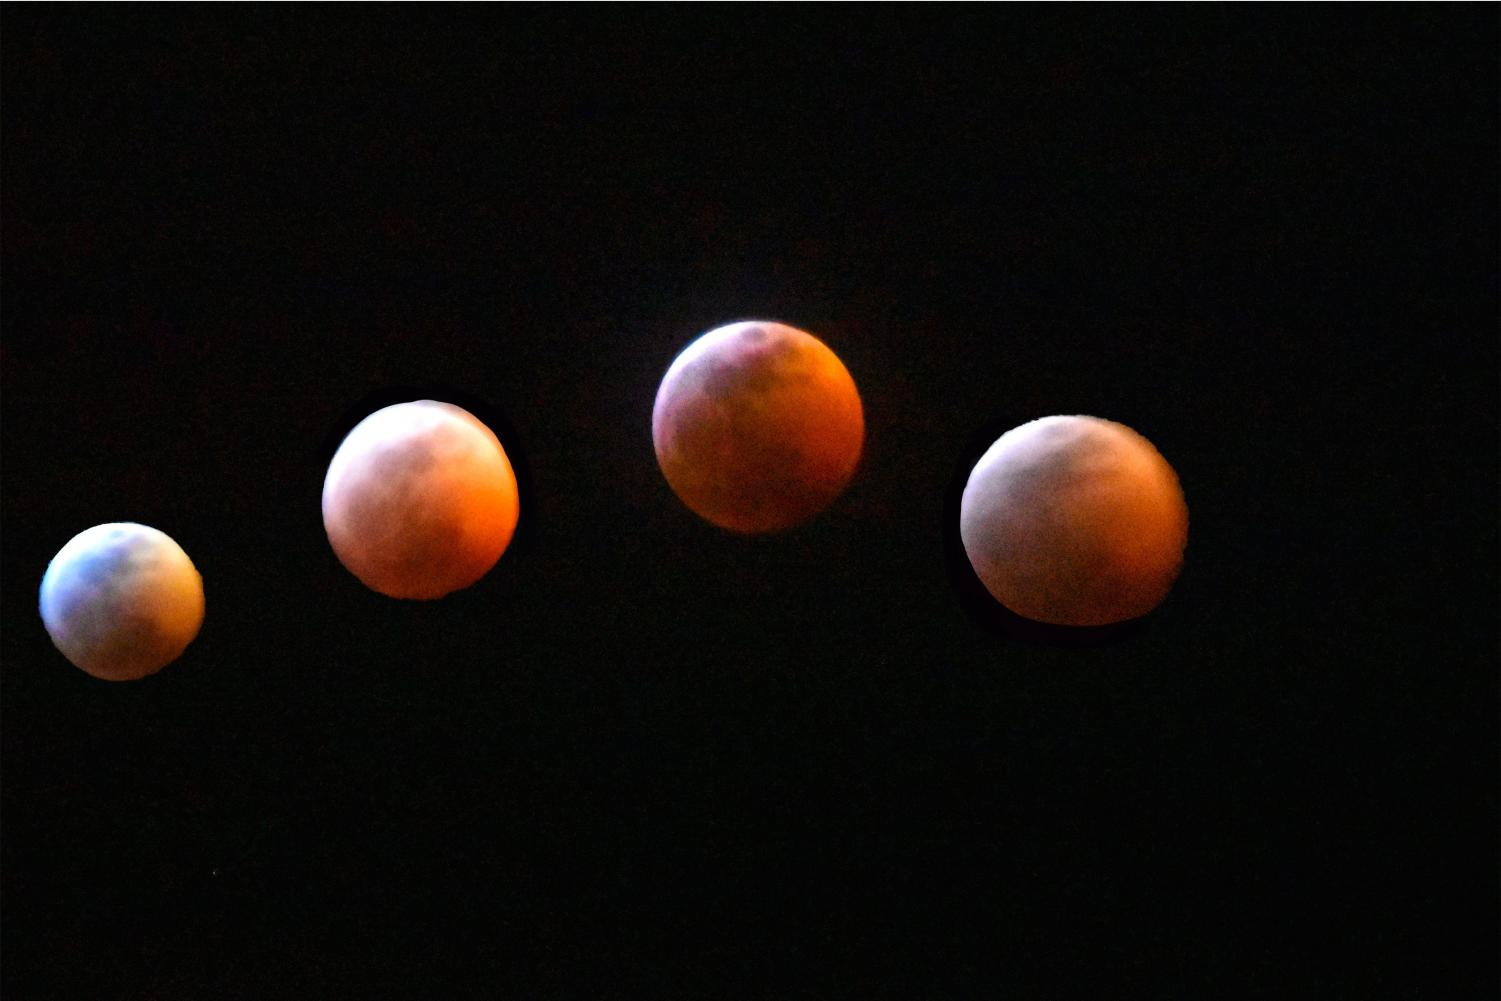 Phases of the Super Blood Wolf Moon Eclipse Jan. 20, in Phoenix AZ.